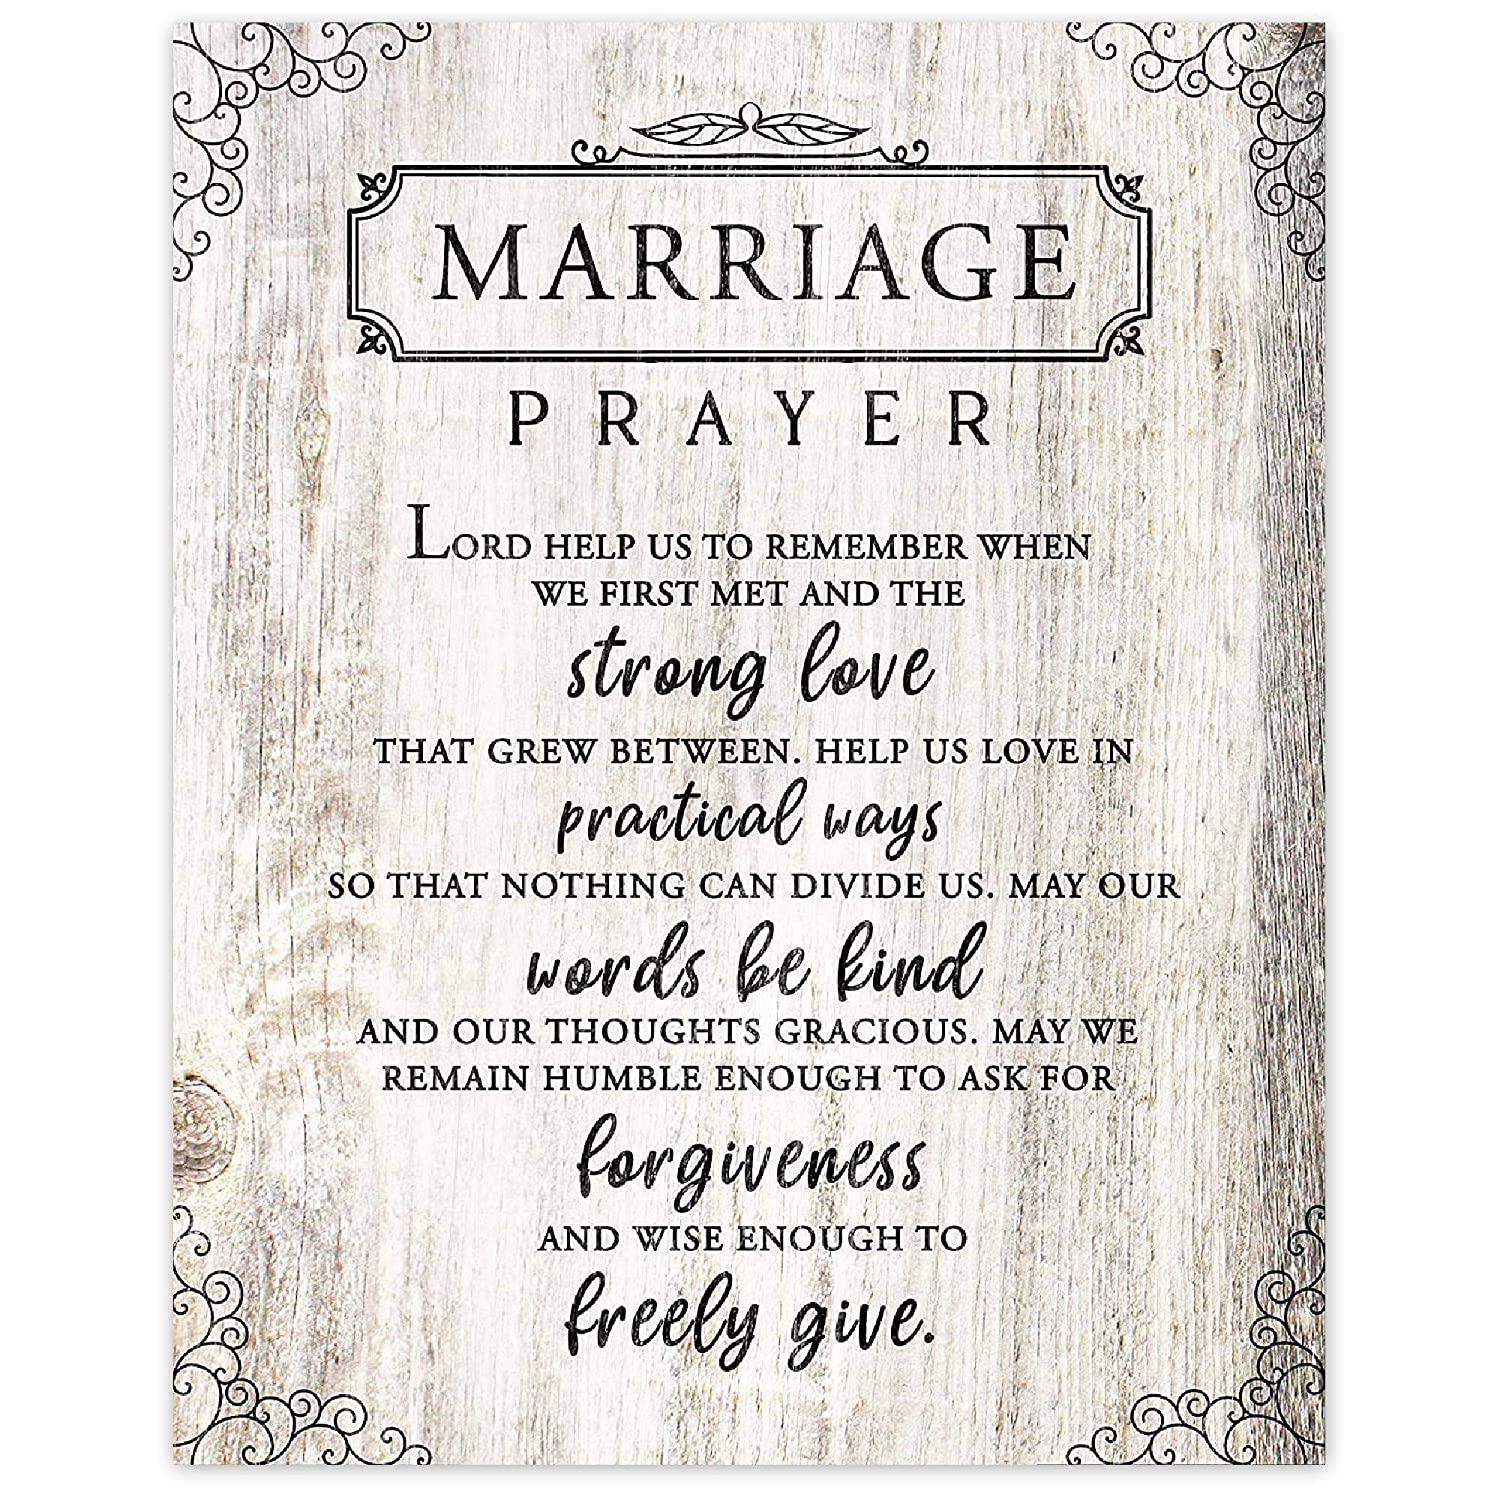 Marriage Prayer Prints, Set of 1 (8x10) Unframed Photo, Unique Wall Art Decor Gifts Under 15 for Newly Married Home, Bride, Groom, First Year Anniversary, Couples, Fiance